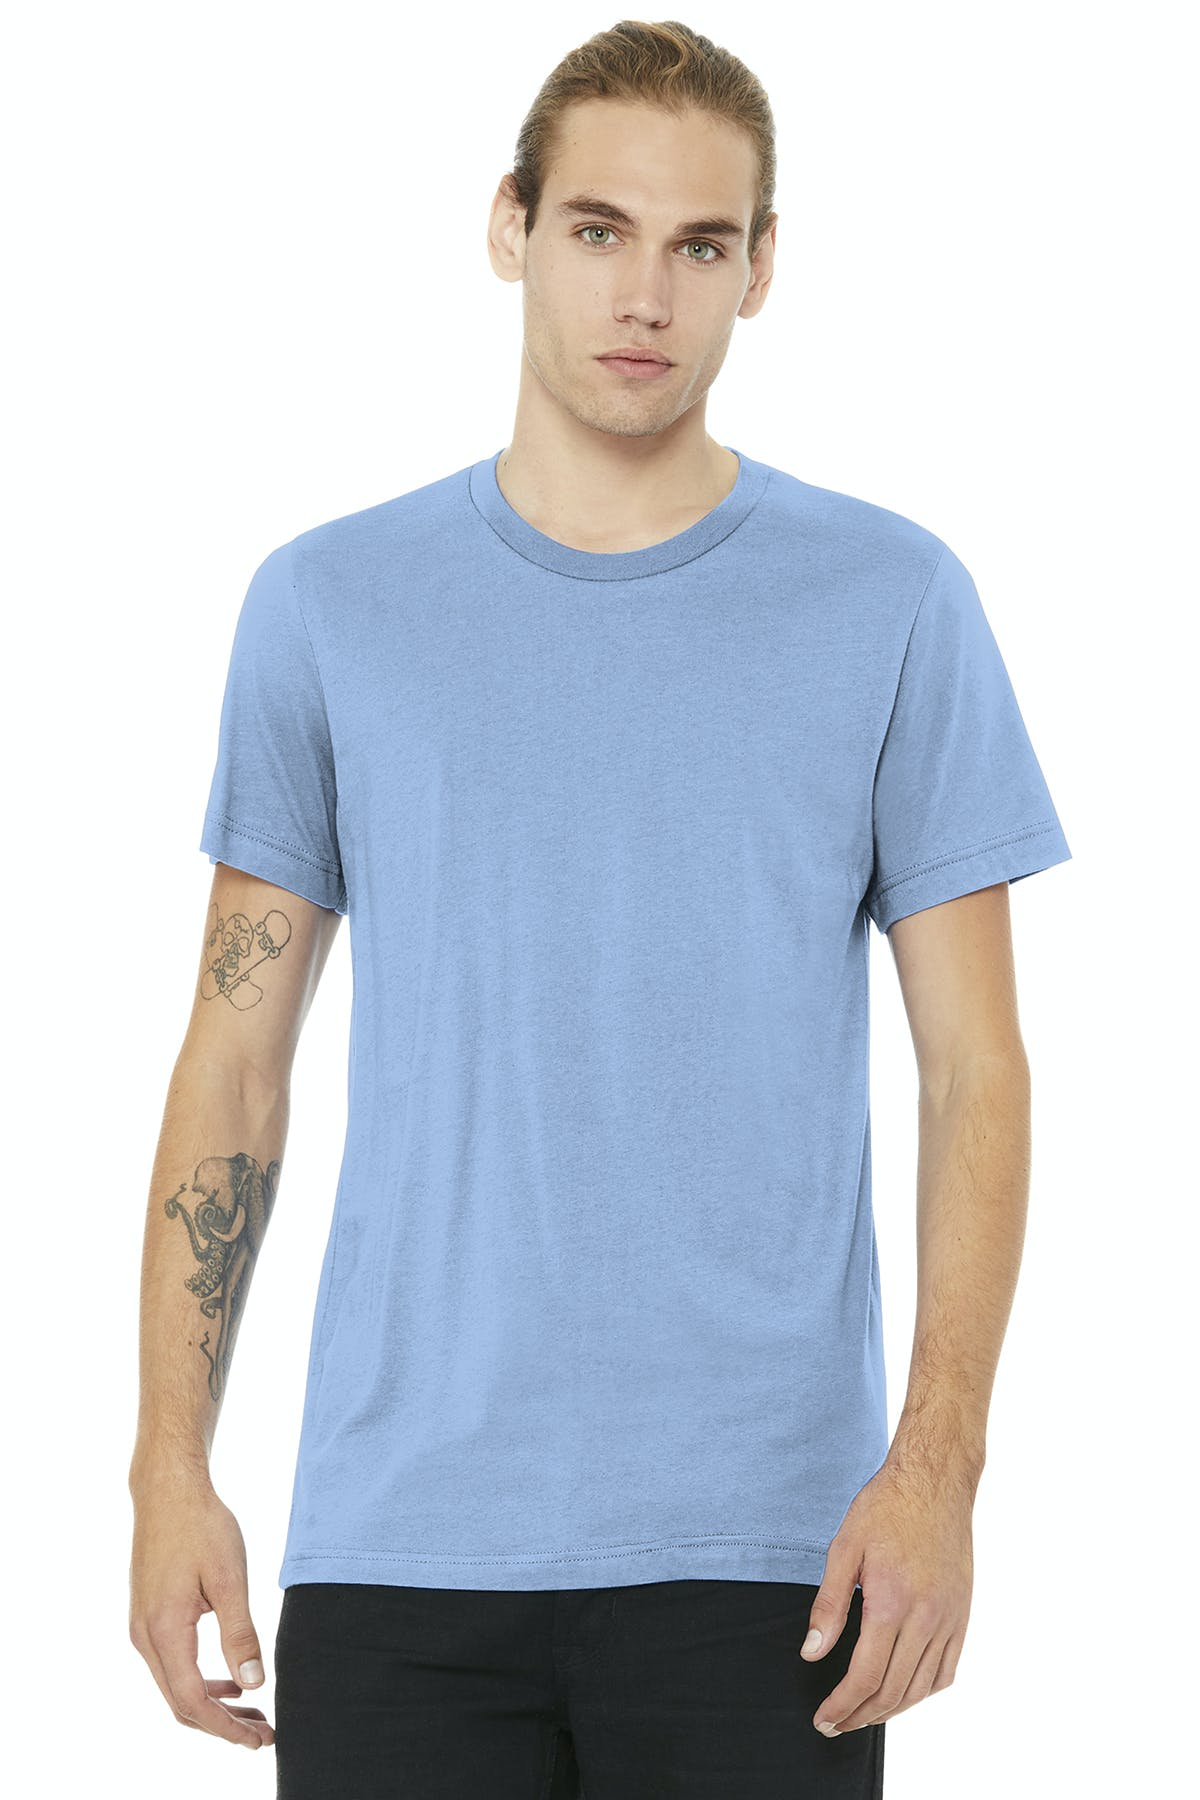 Bella+Canvas ® Unisex Jersey Short Sleeve Tee - sold by PRINT CITY GRAPHICS, INC